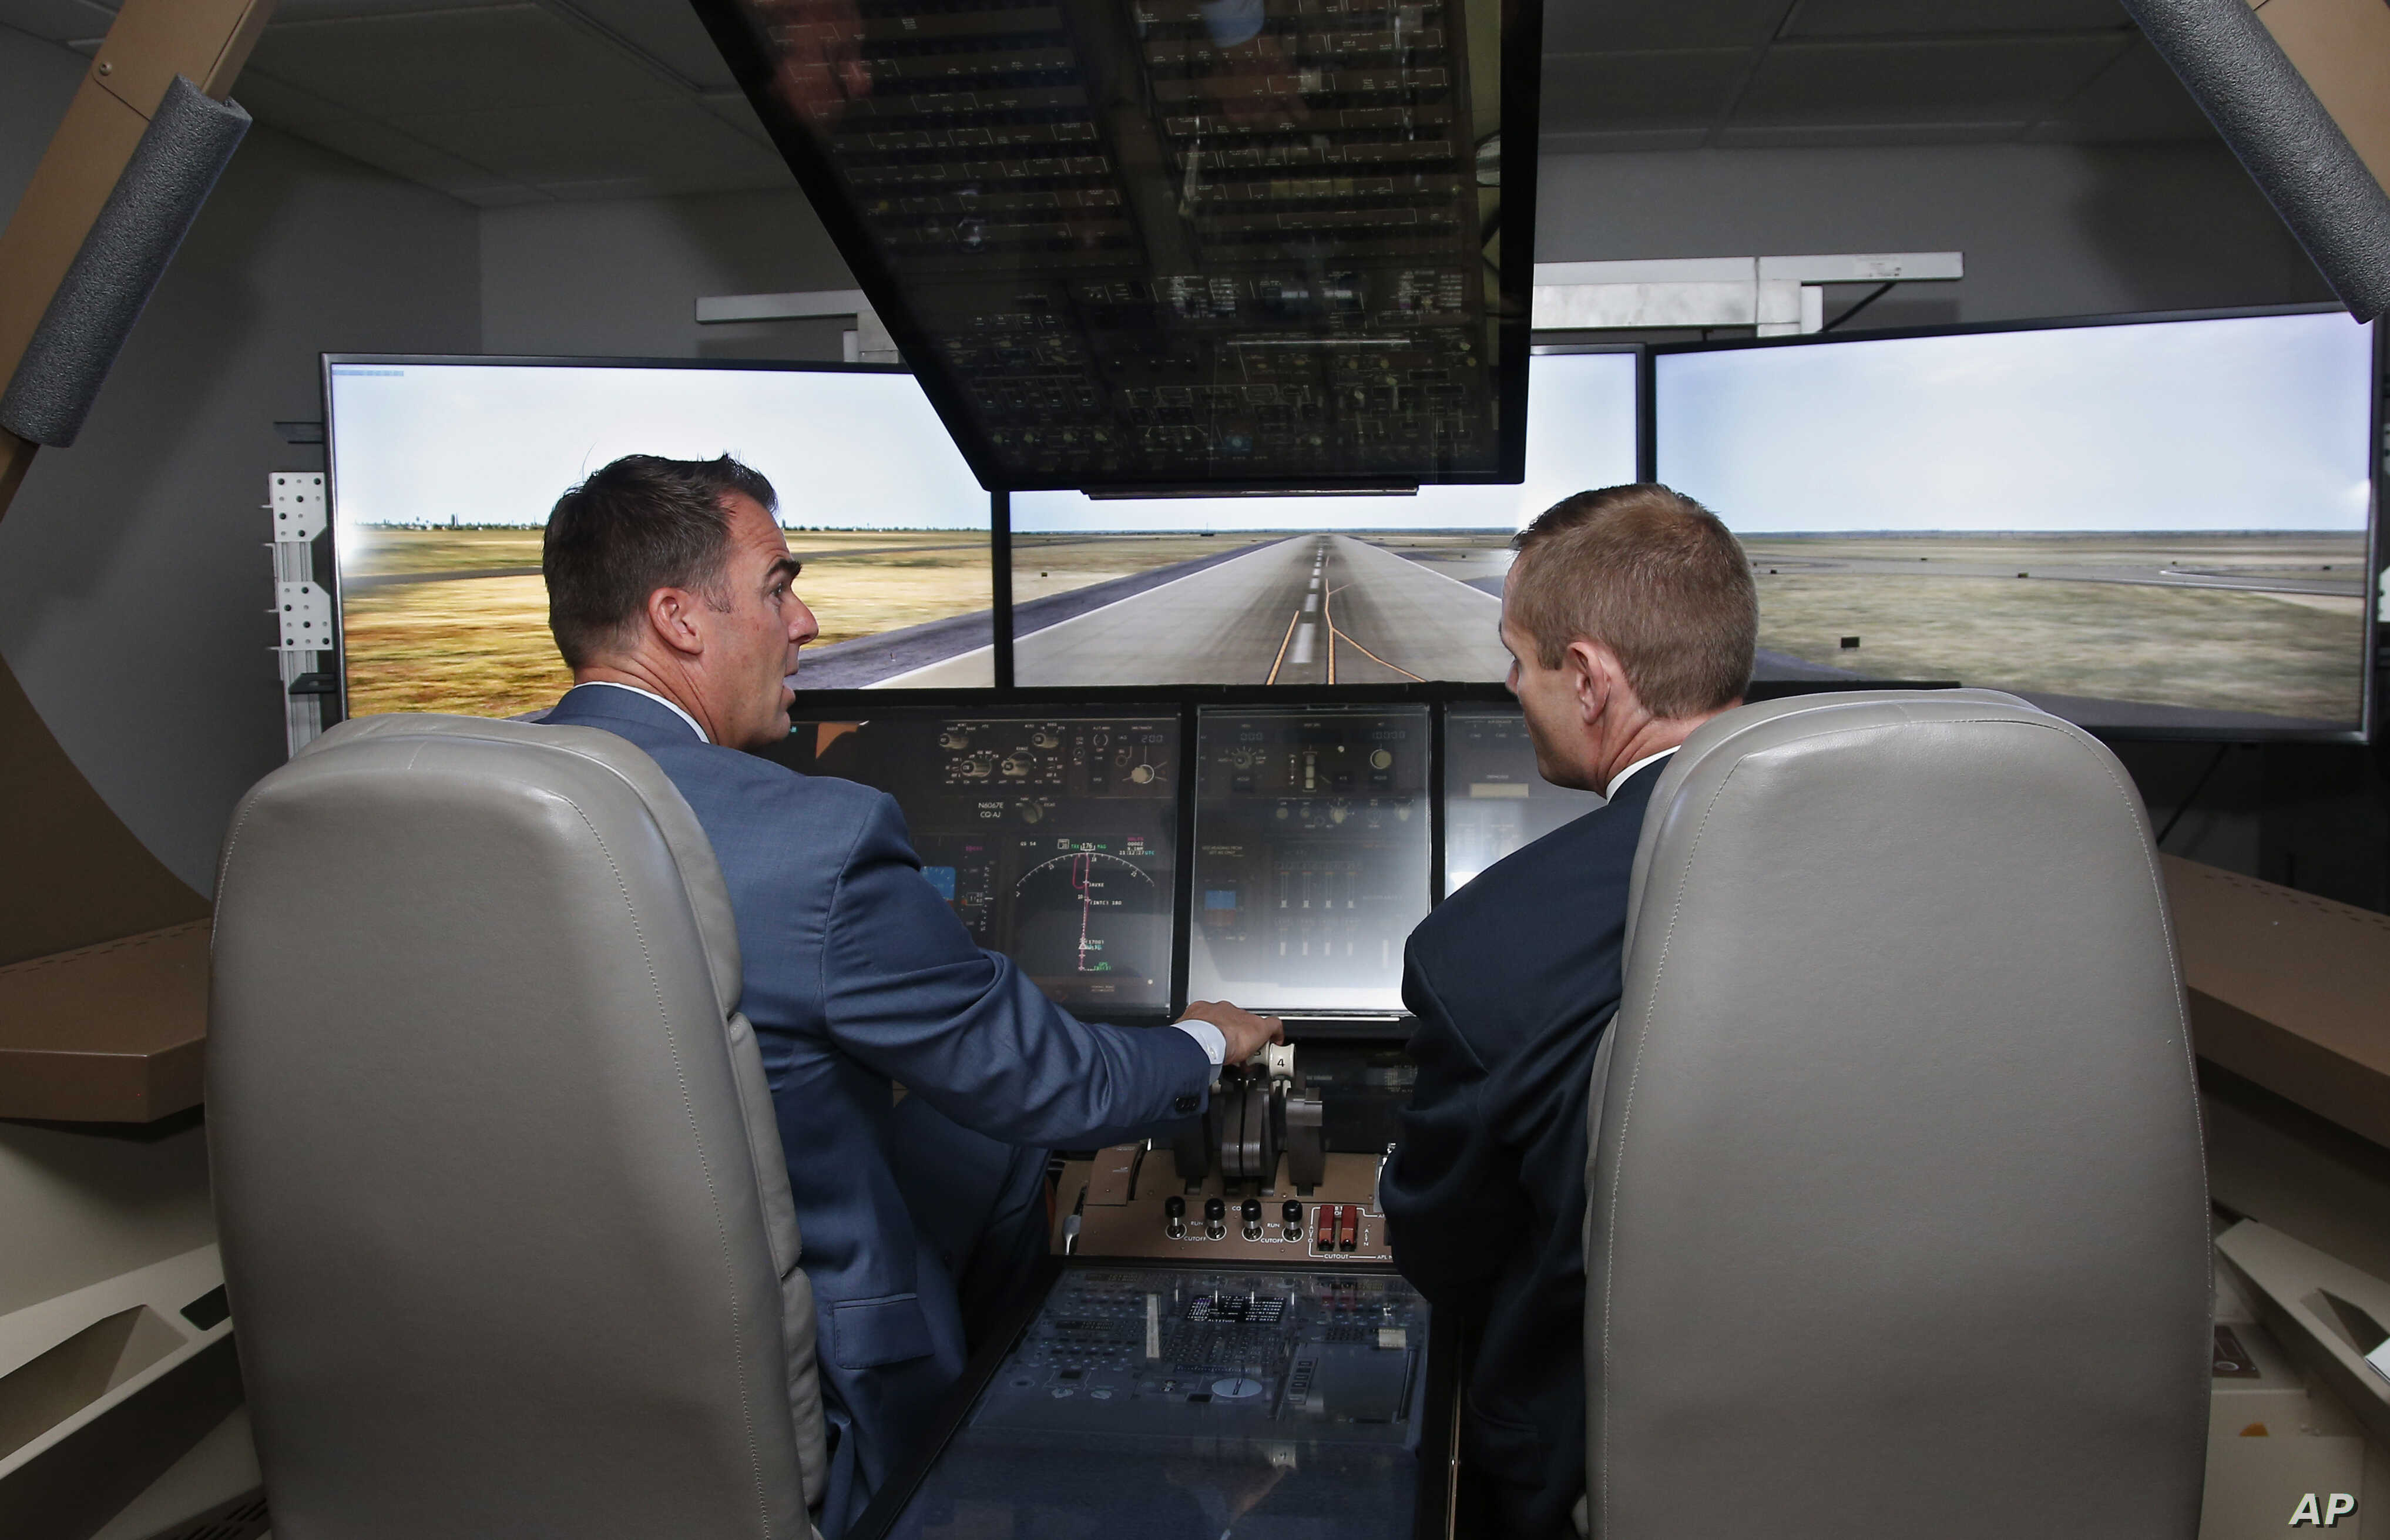 Boeing Admits Flaw in 737 MAX Simulator Software | Voice of